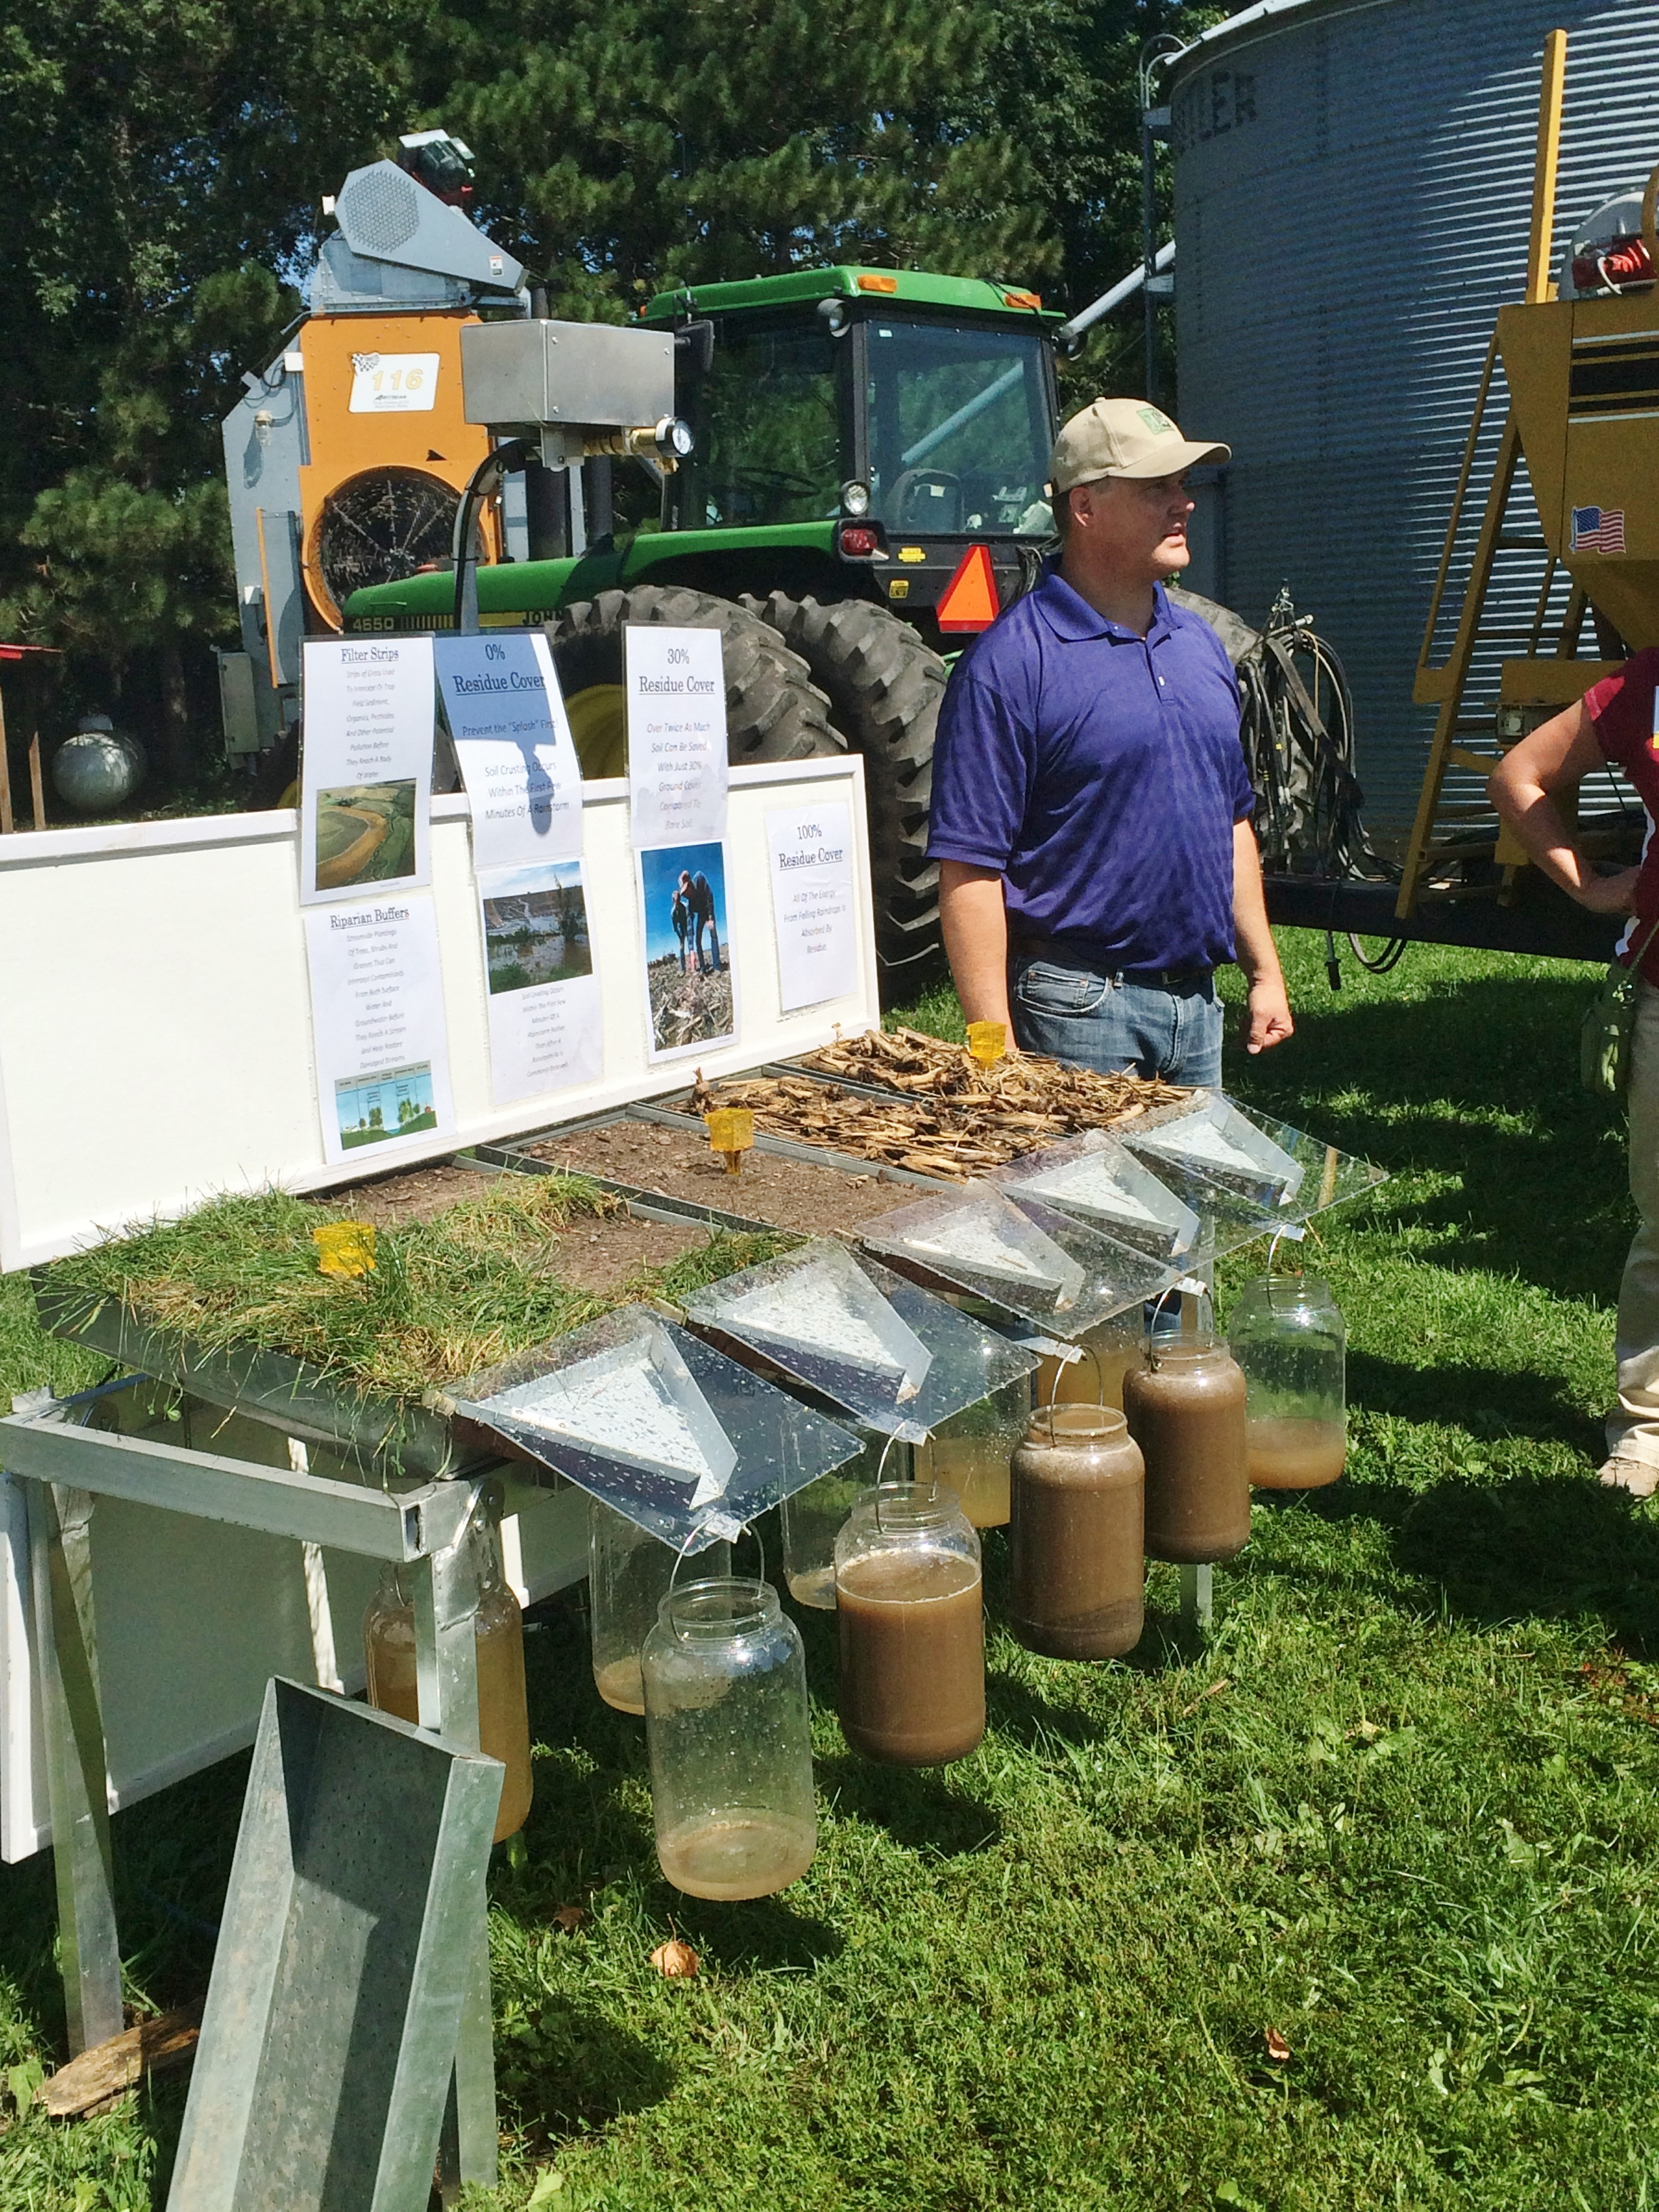 Demonstrating the effectiveness of buffers, as compared to bare soil or crop residue in keeping the soil on the land. Part of a tour at the Legvold farm in Northfield, MN sponsored by the Conservation Technology Information Center.